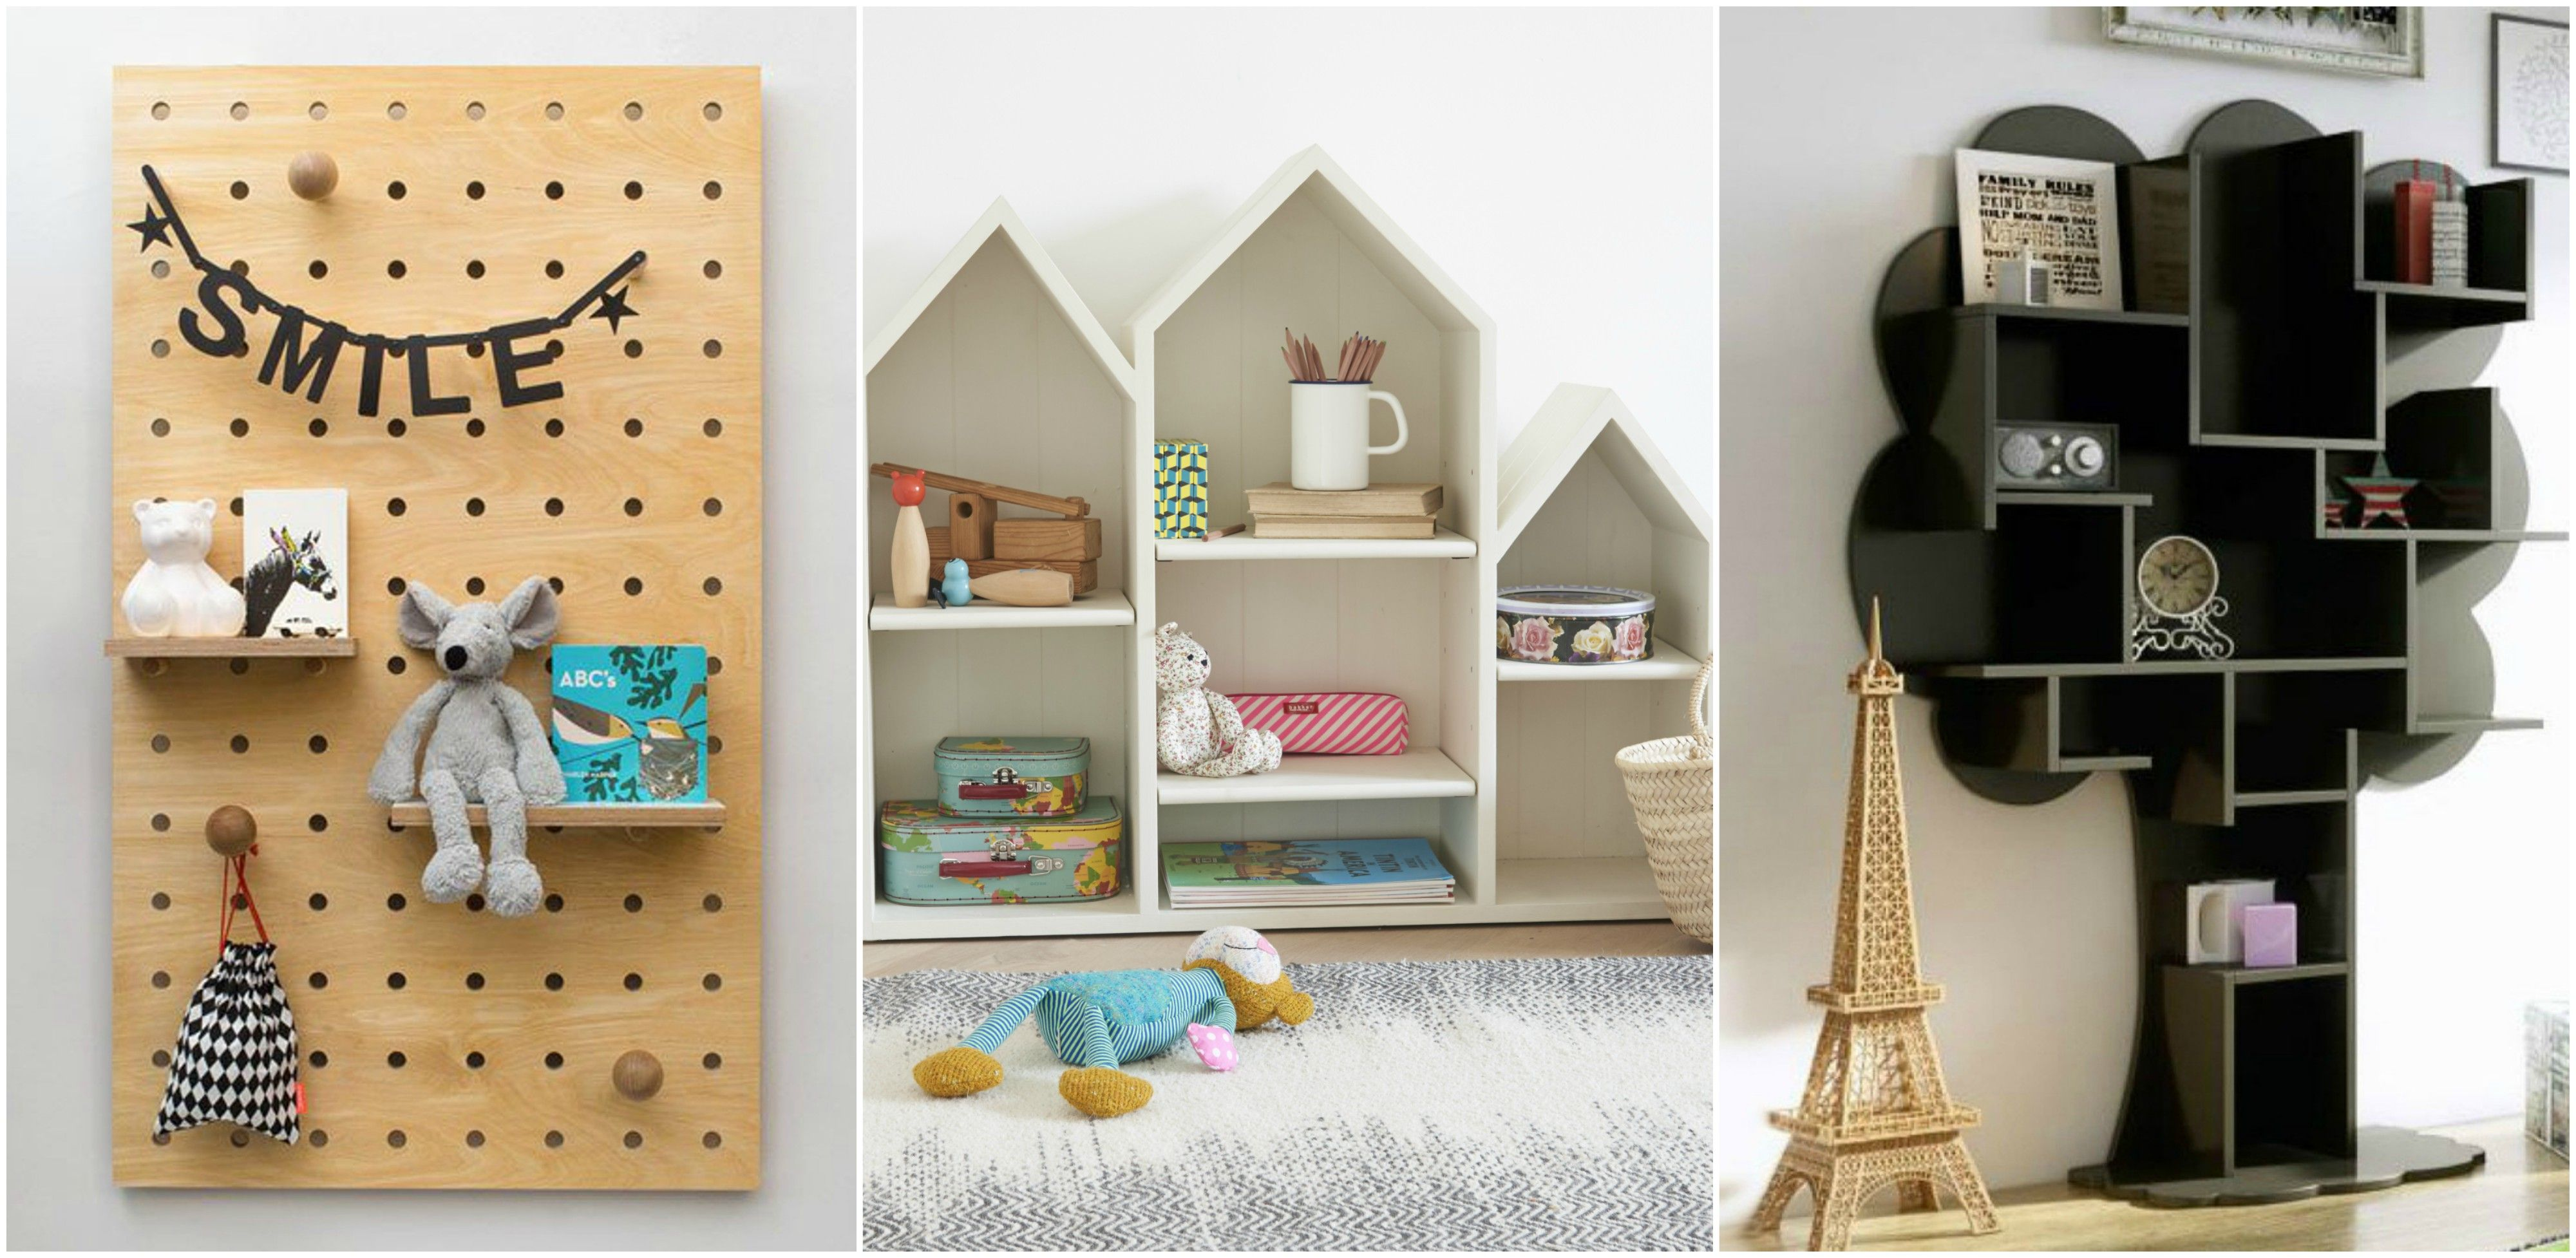 10 Children S Room Storage Ideas Kids Bedroom And Playroom